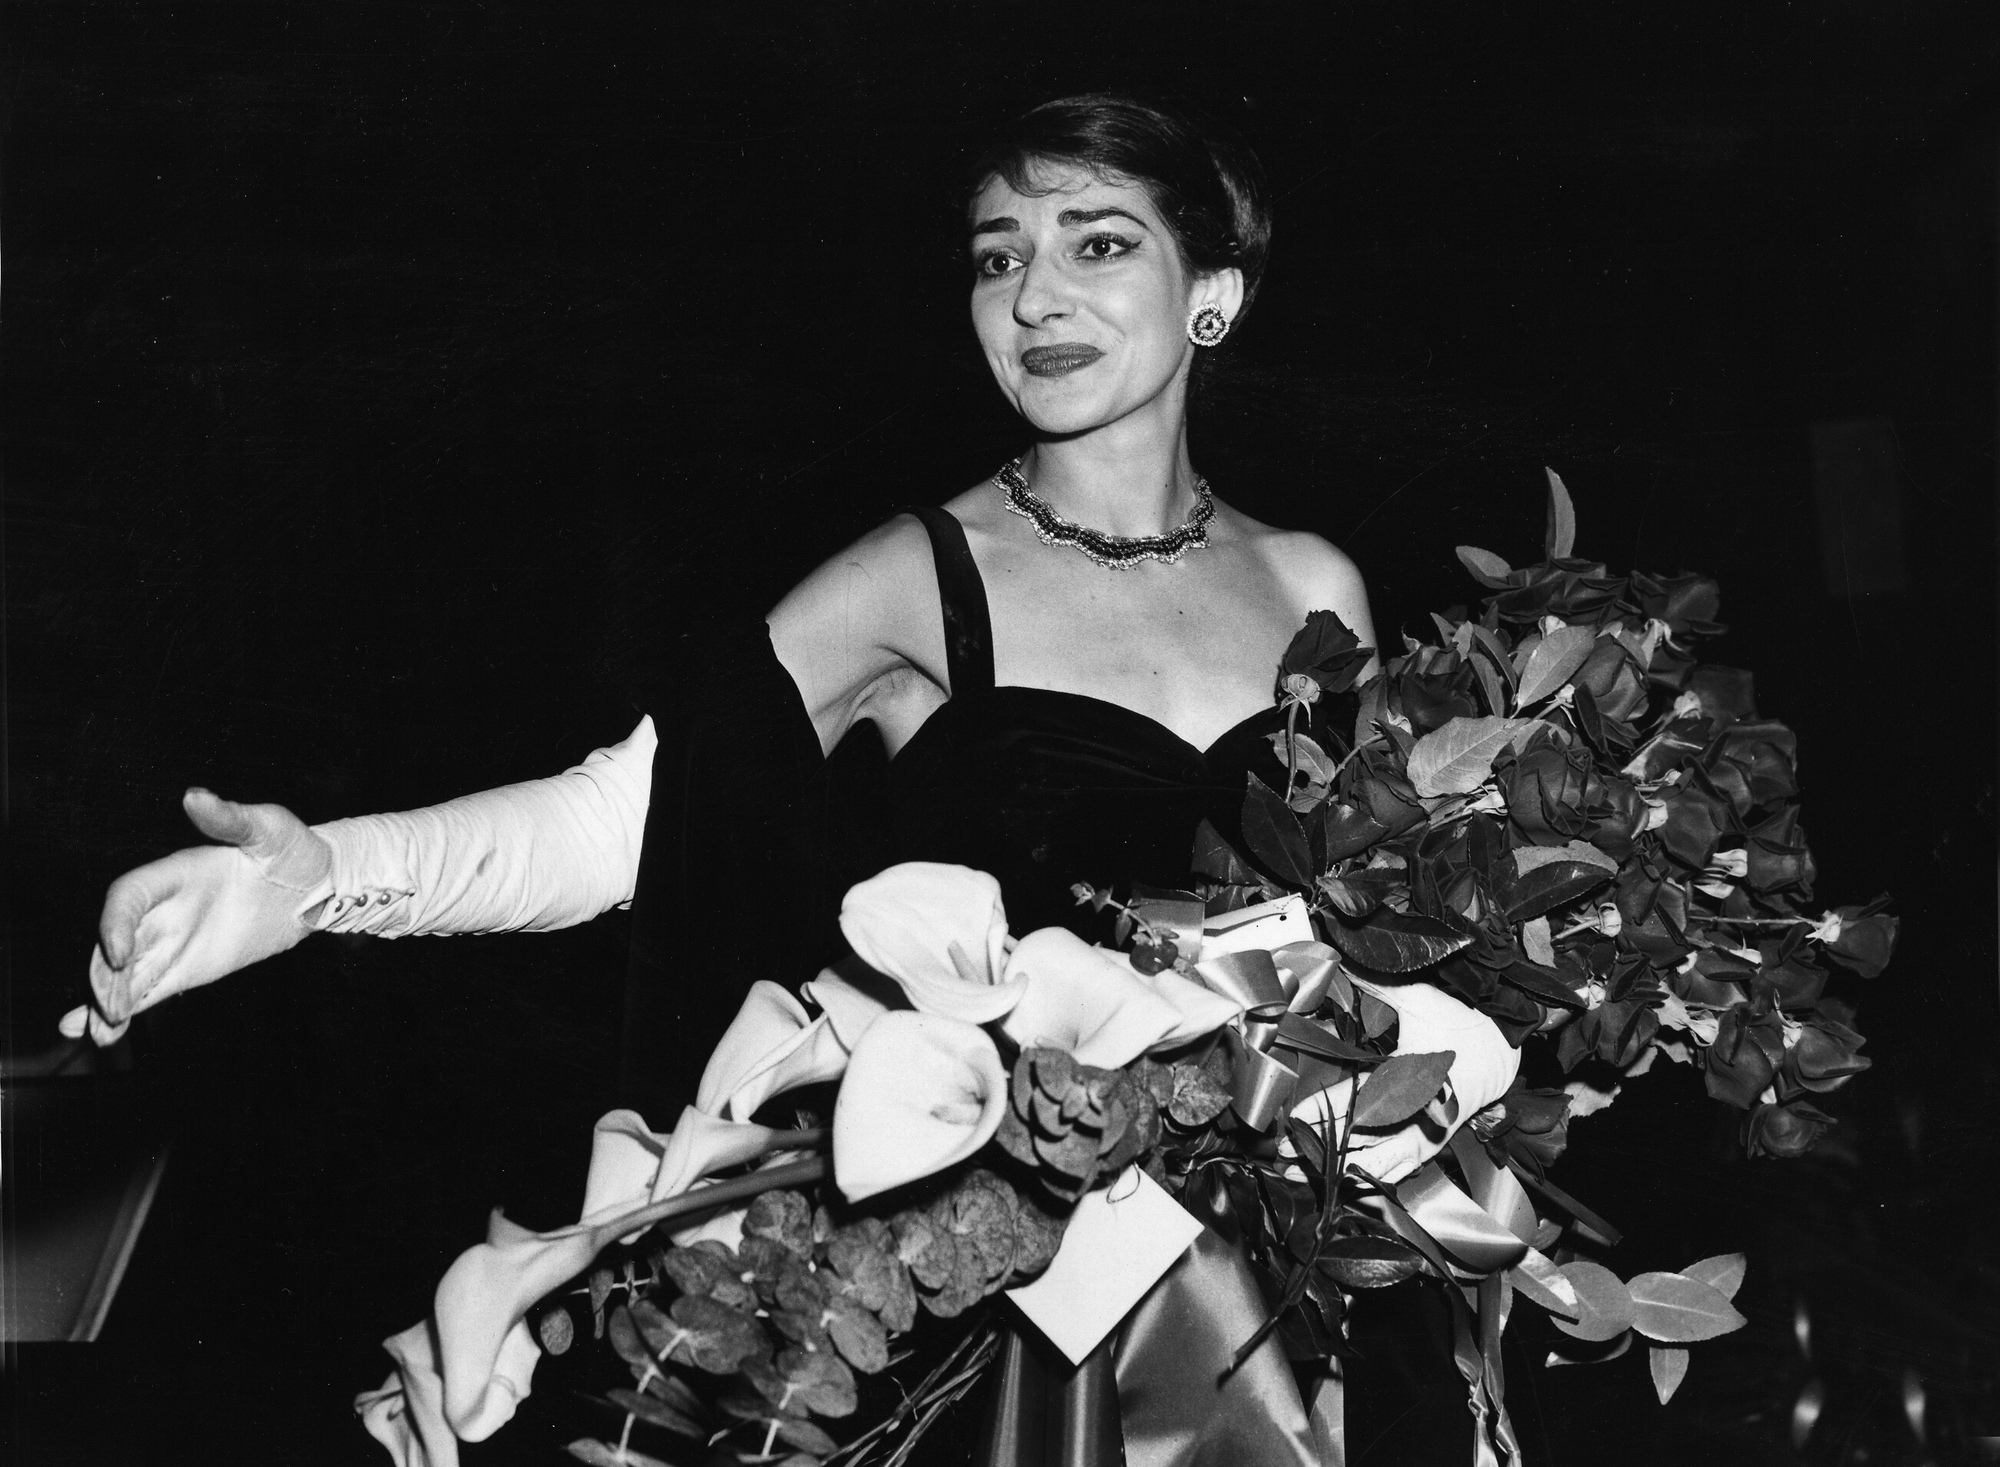 Maria Callas, Opera singer shown at curtain call after her concert at the Chicago Civic Opera House in 1958.